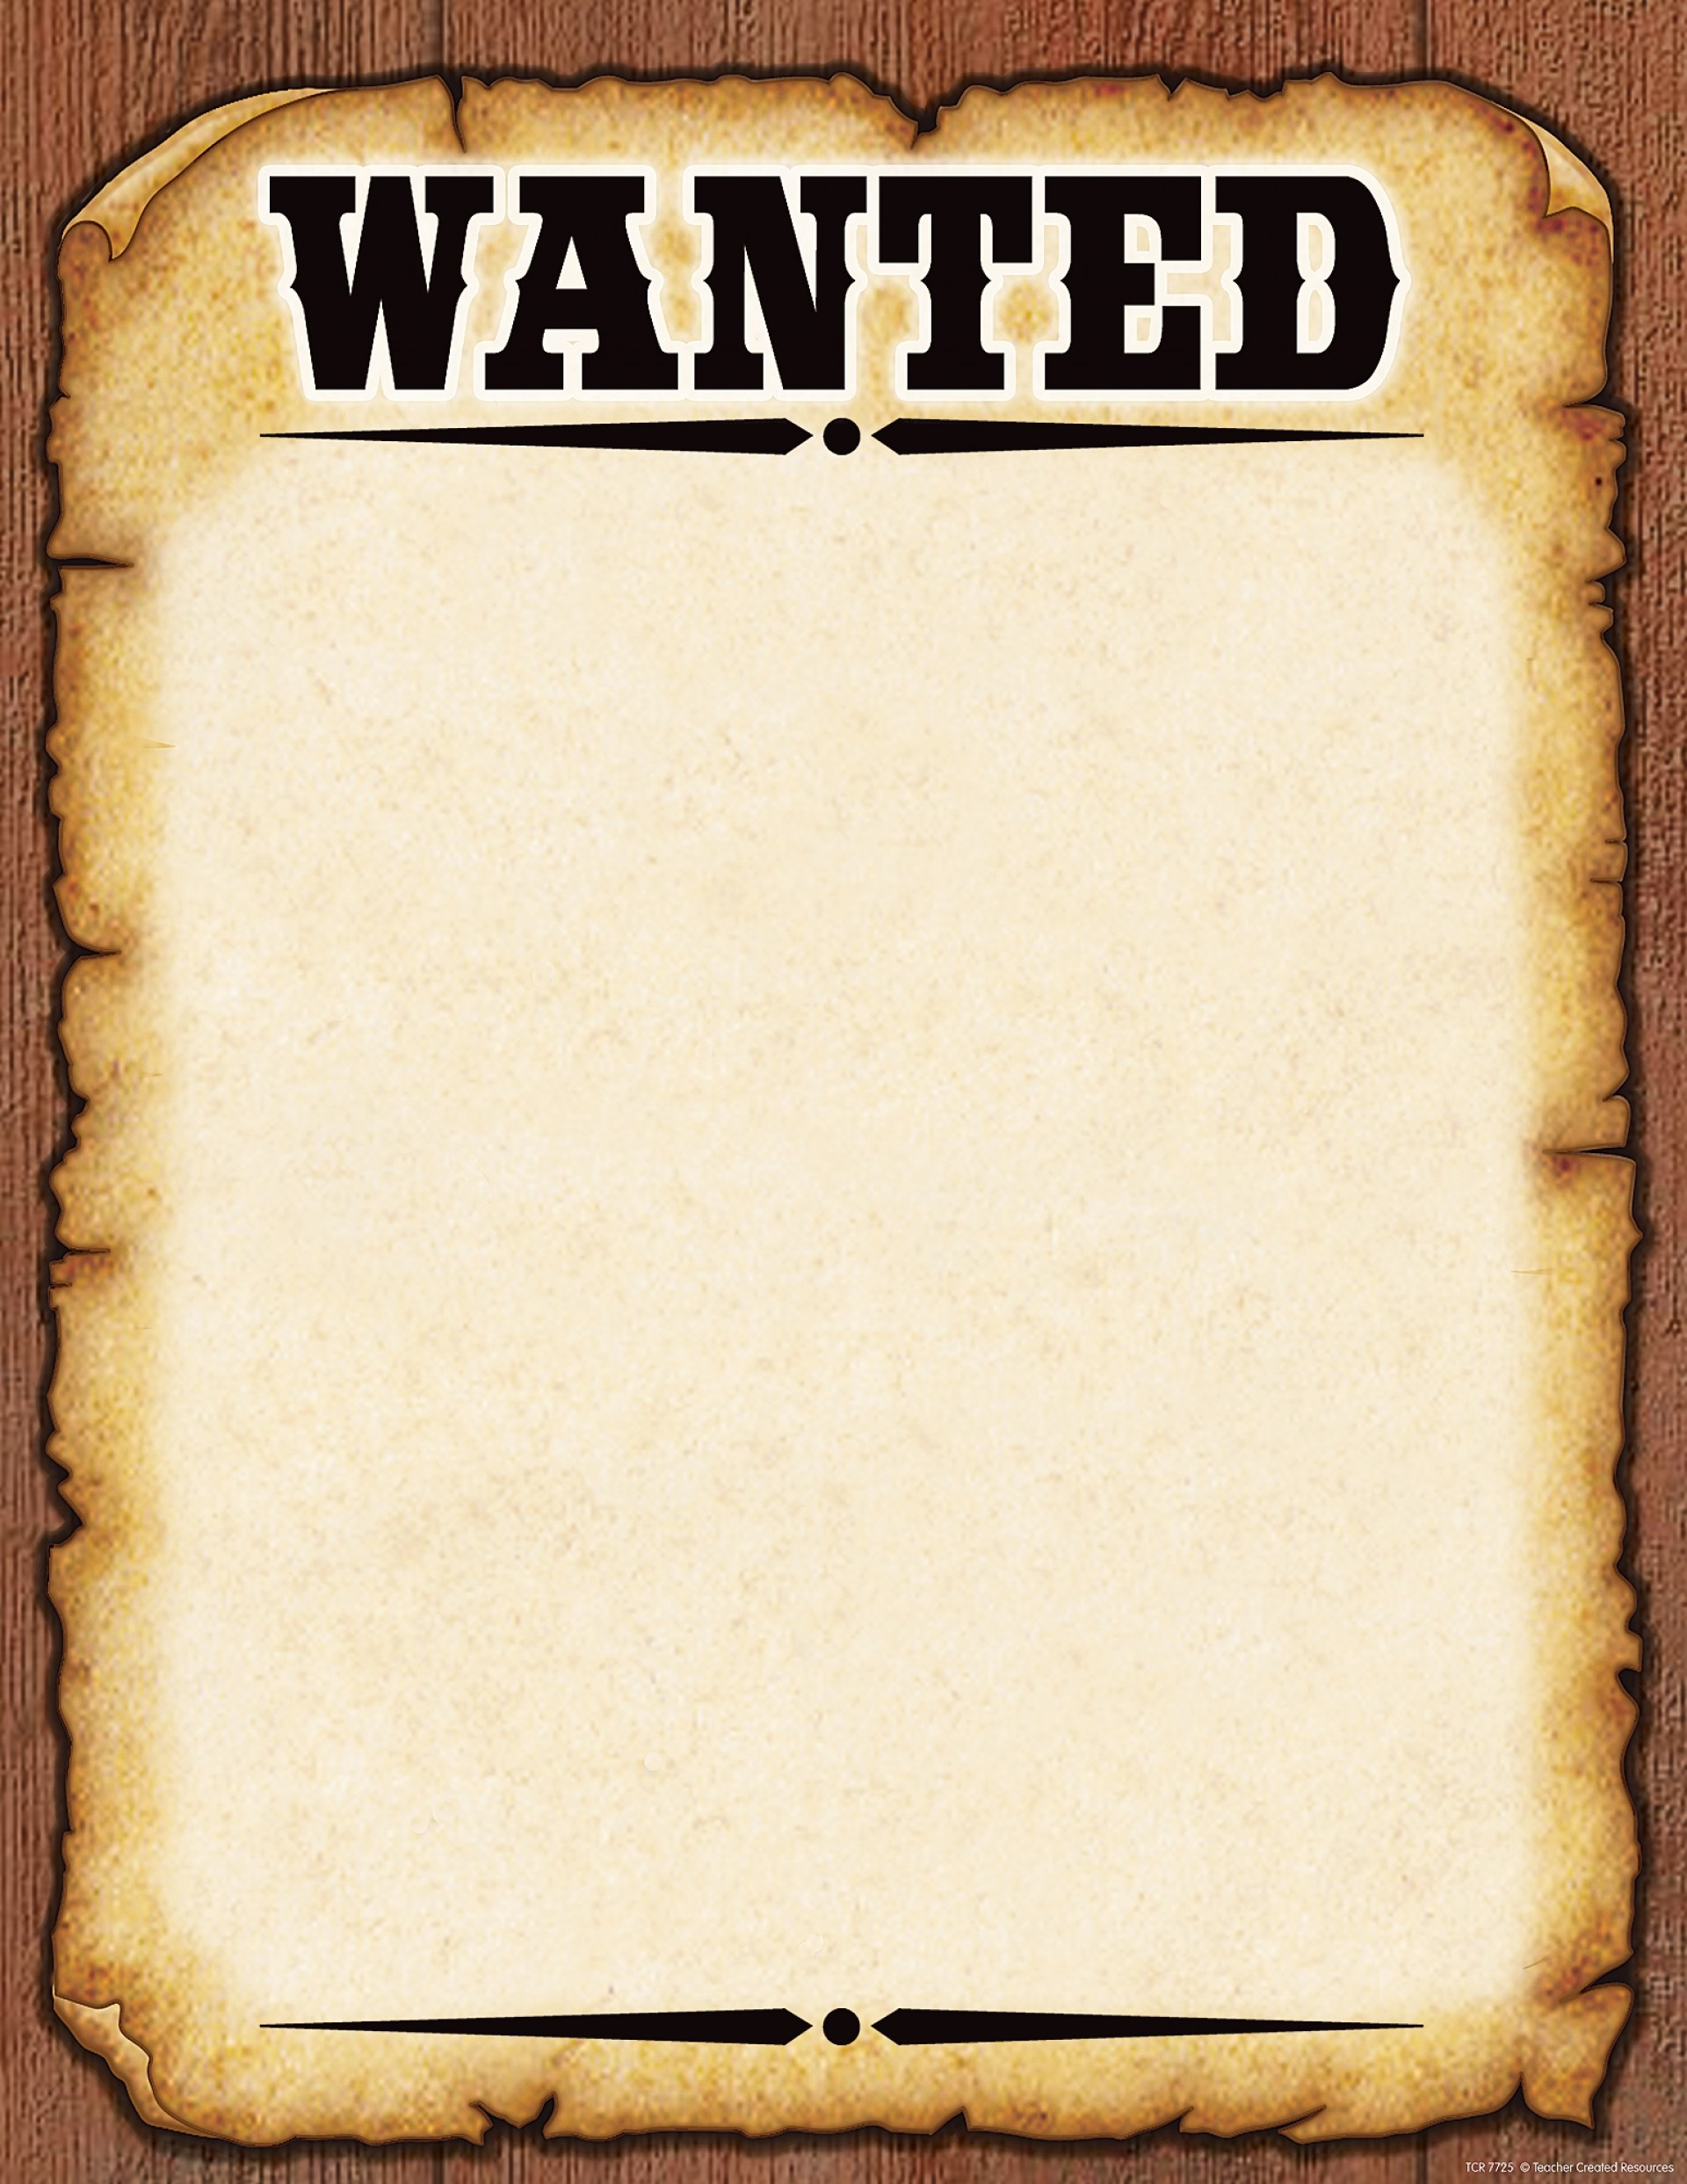 001 Wanted Poster Template Free Printable Make Your Own 150813 - Wanted Poster Printable Free